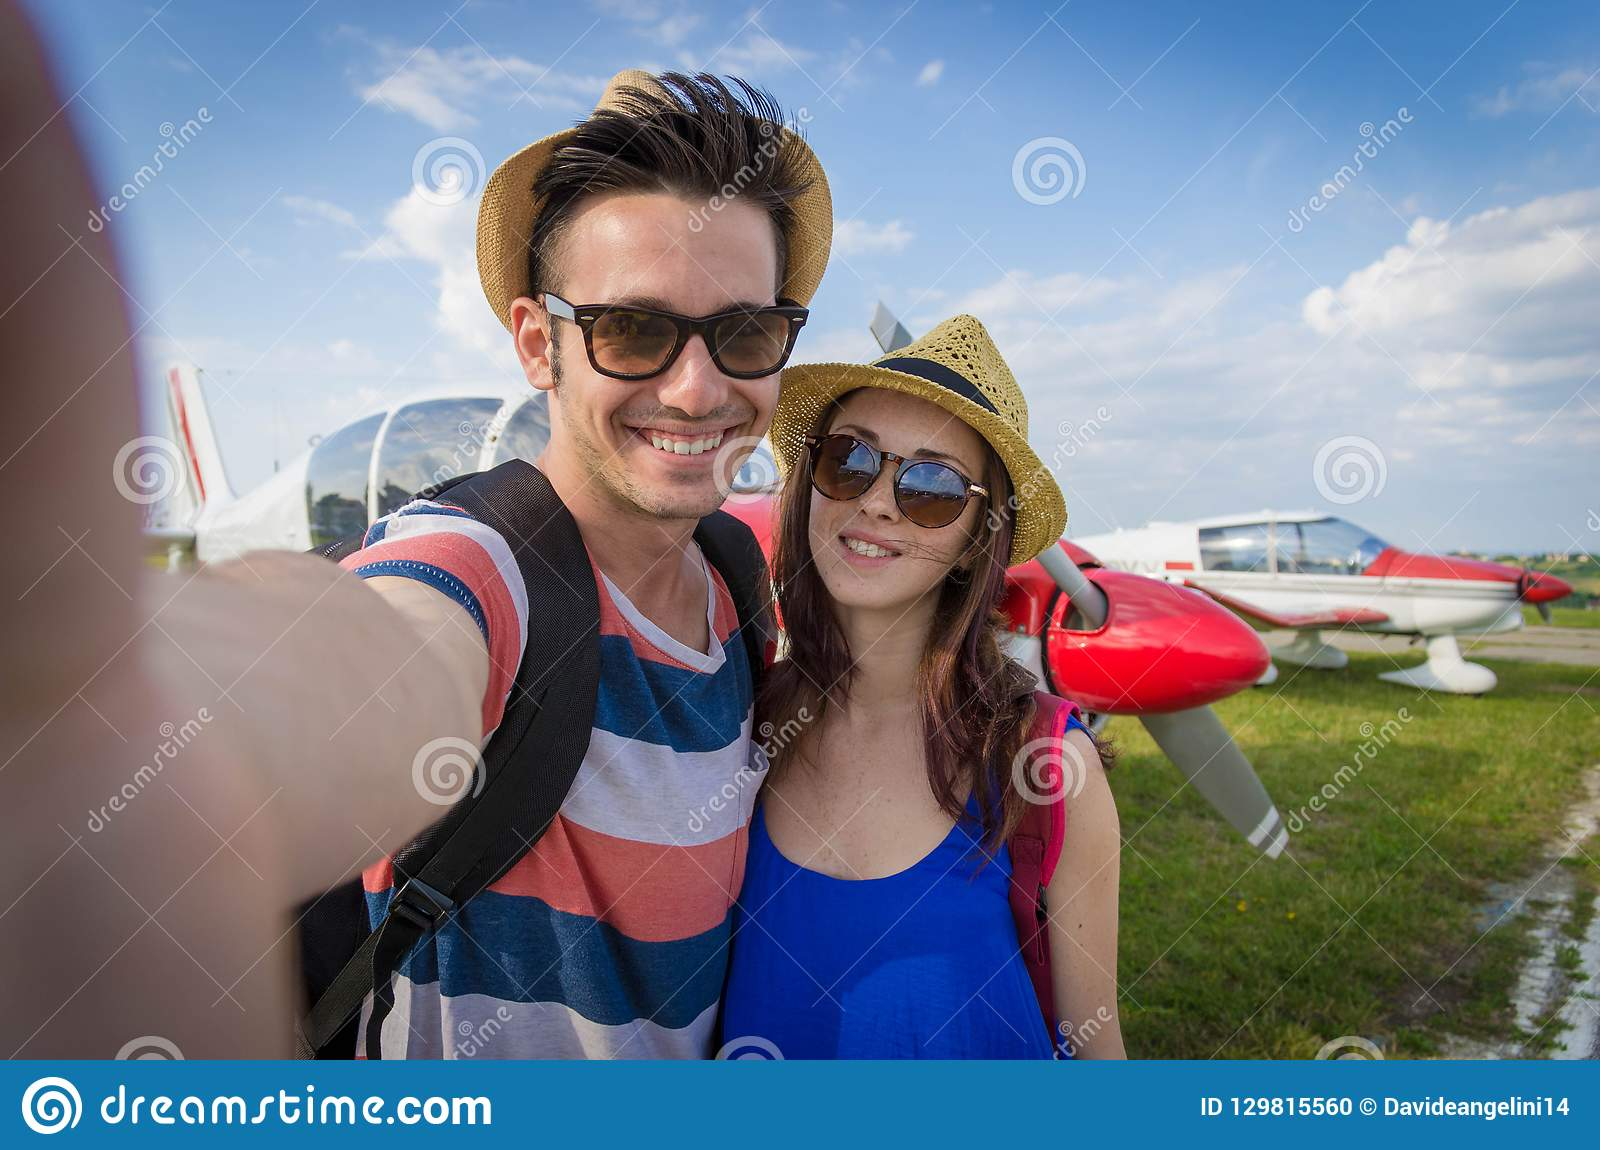 Couple taking a selfie at airport on vacation